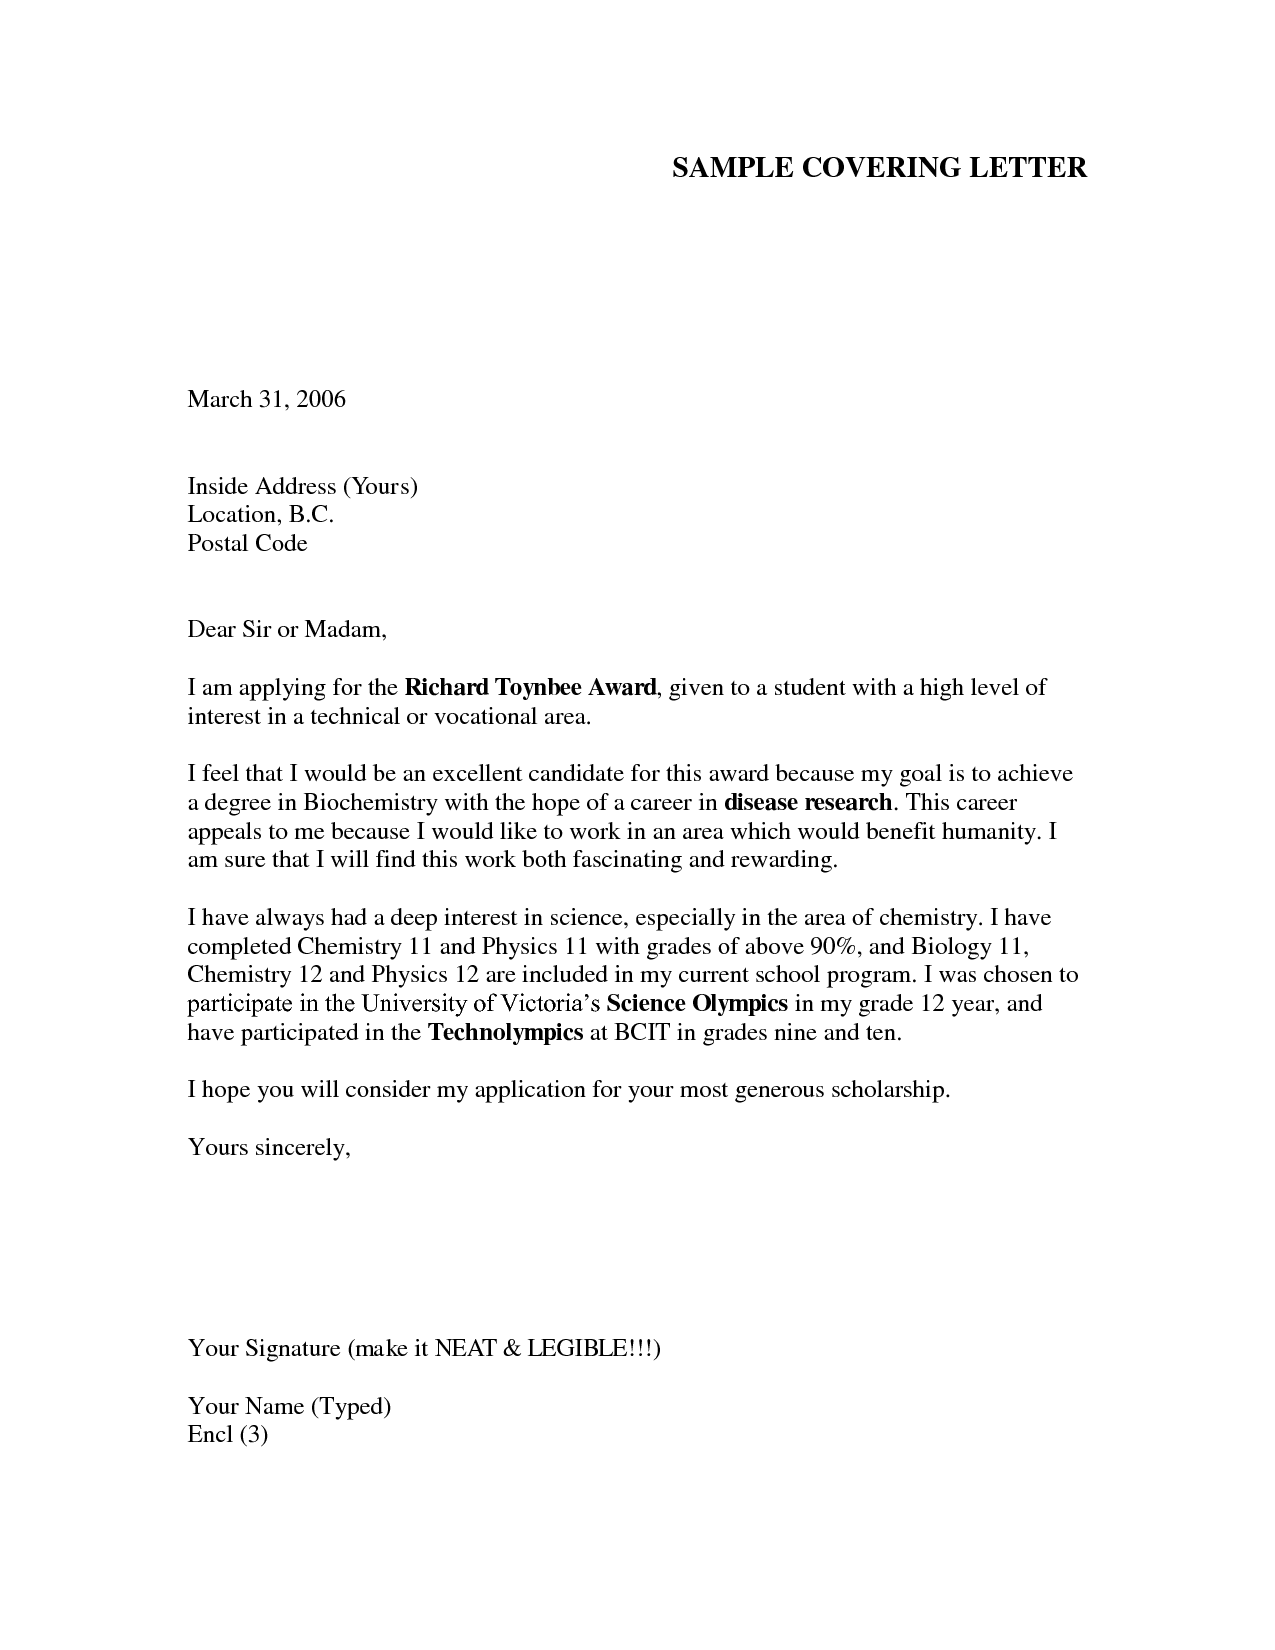 Cover letter example for job application cover letter for What is a cover letter on an application